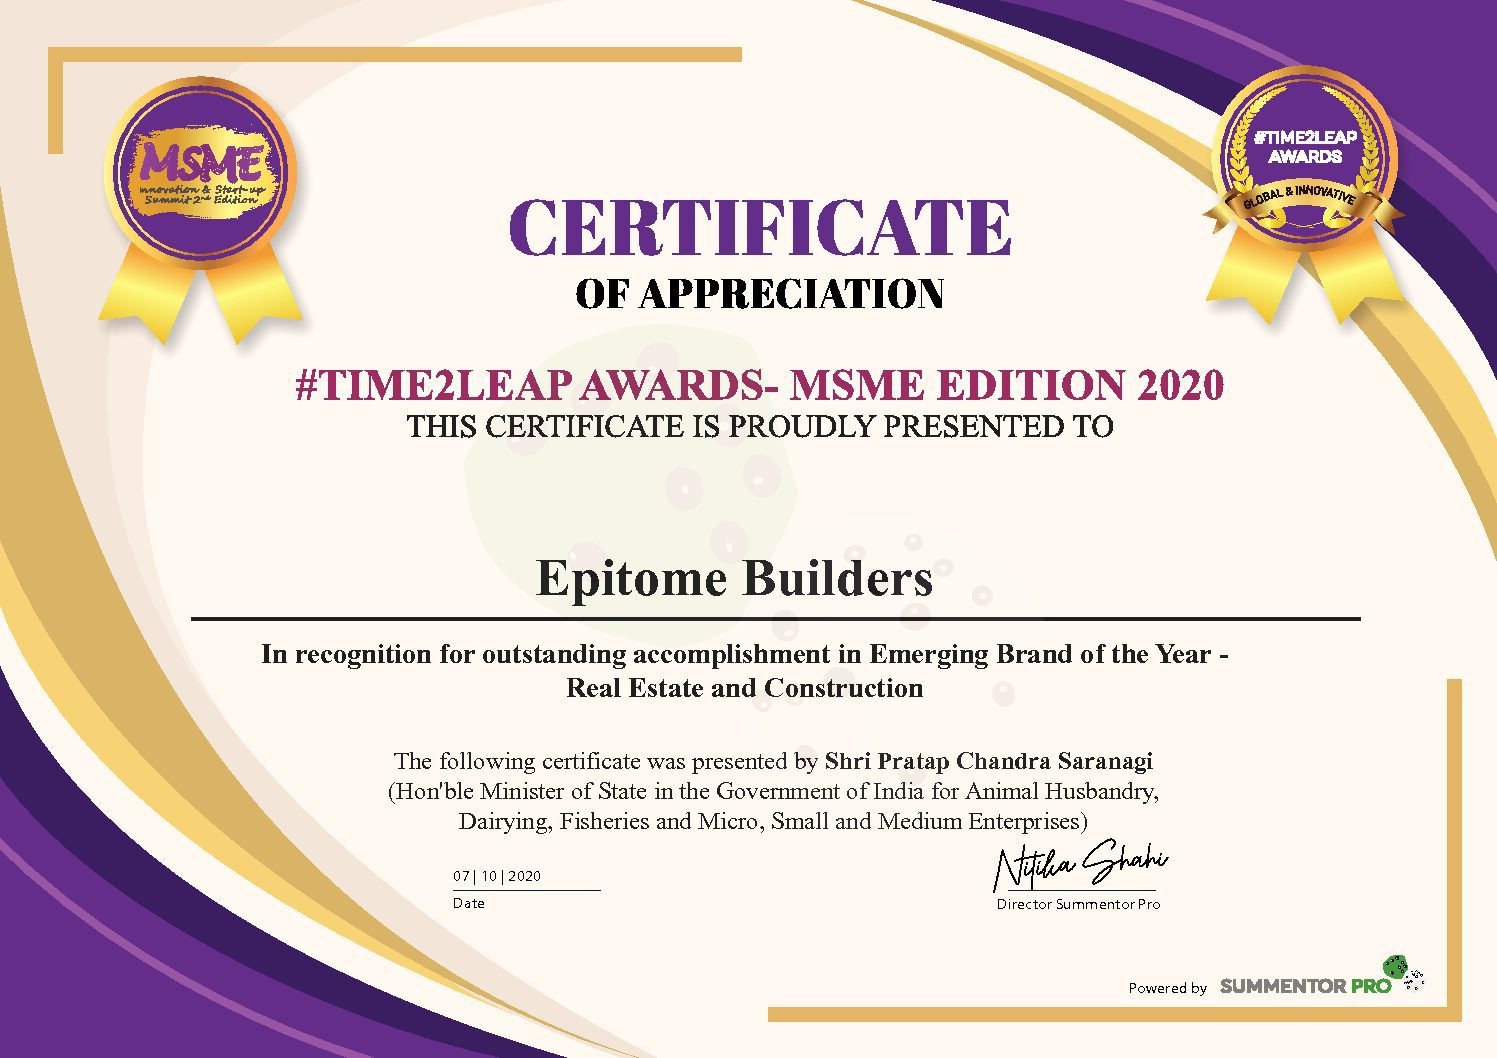 Epitome Builders- Emerging